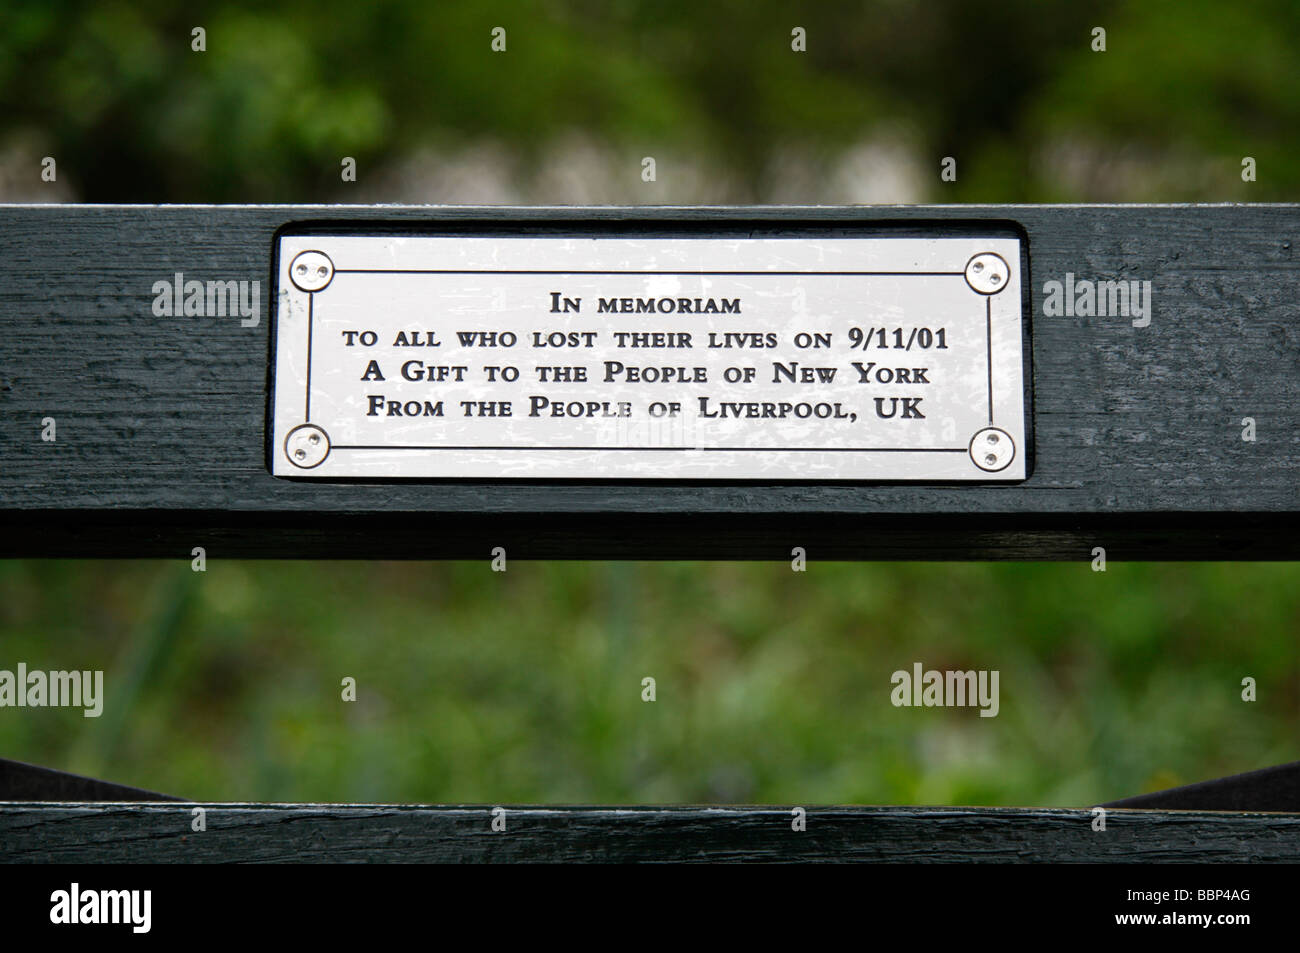 Memorial Bench Plaque The Plaque On A 9 11 Memorial Bench Close To The Quot Imagine